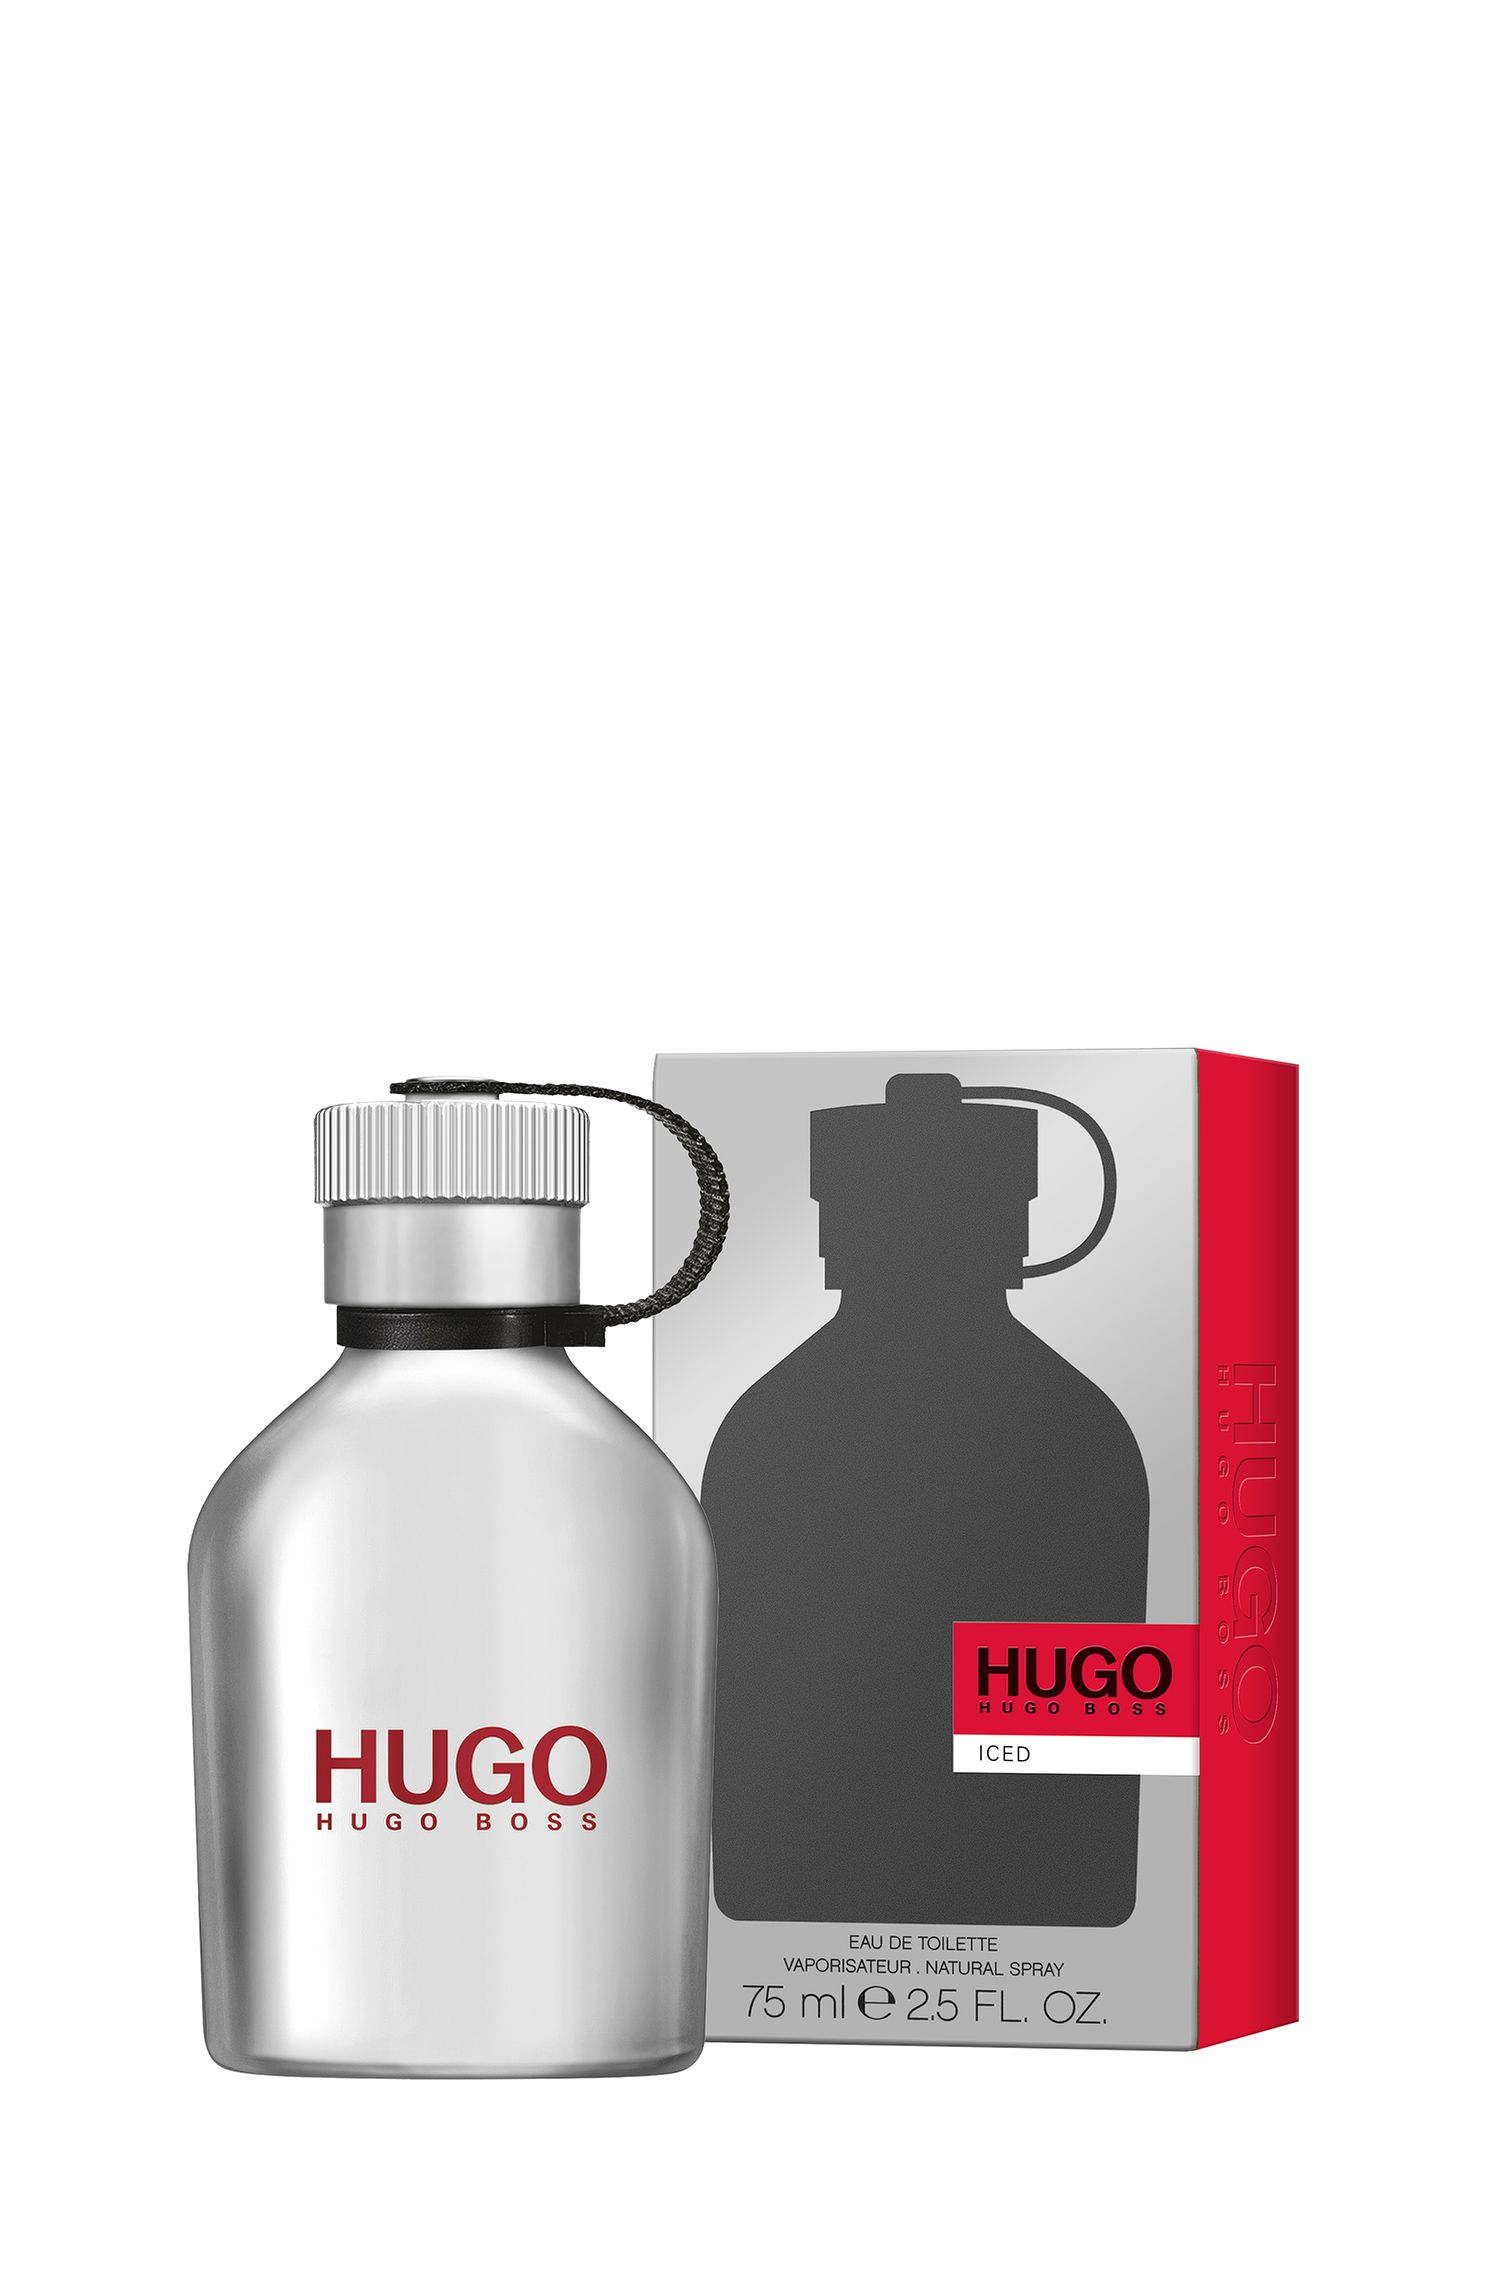 Eau de Toilette HUGO Iced, 75 ml, Assorted-Pre-Pack